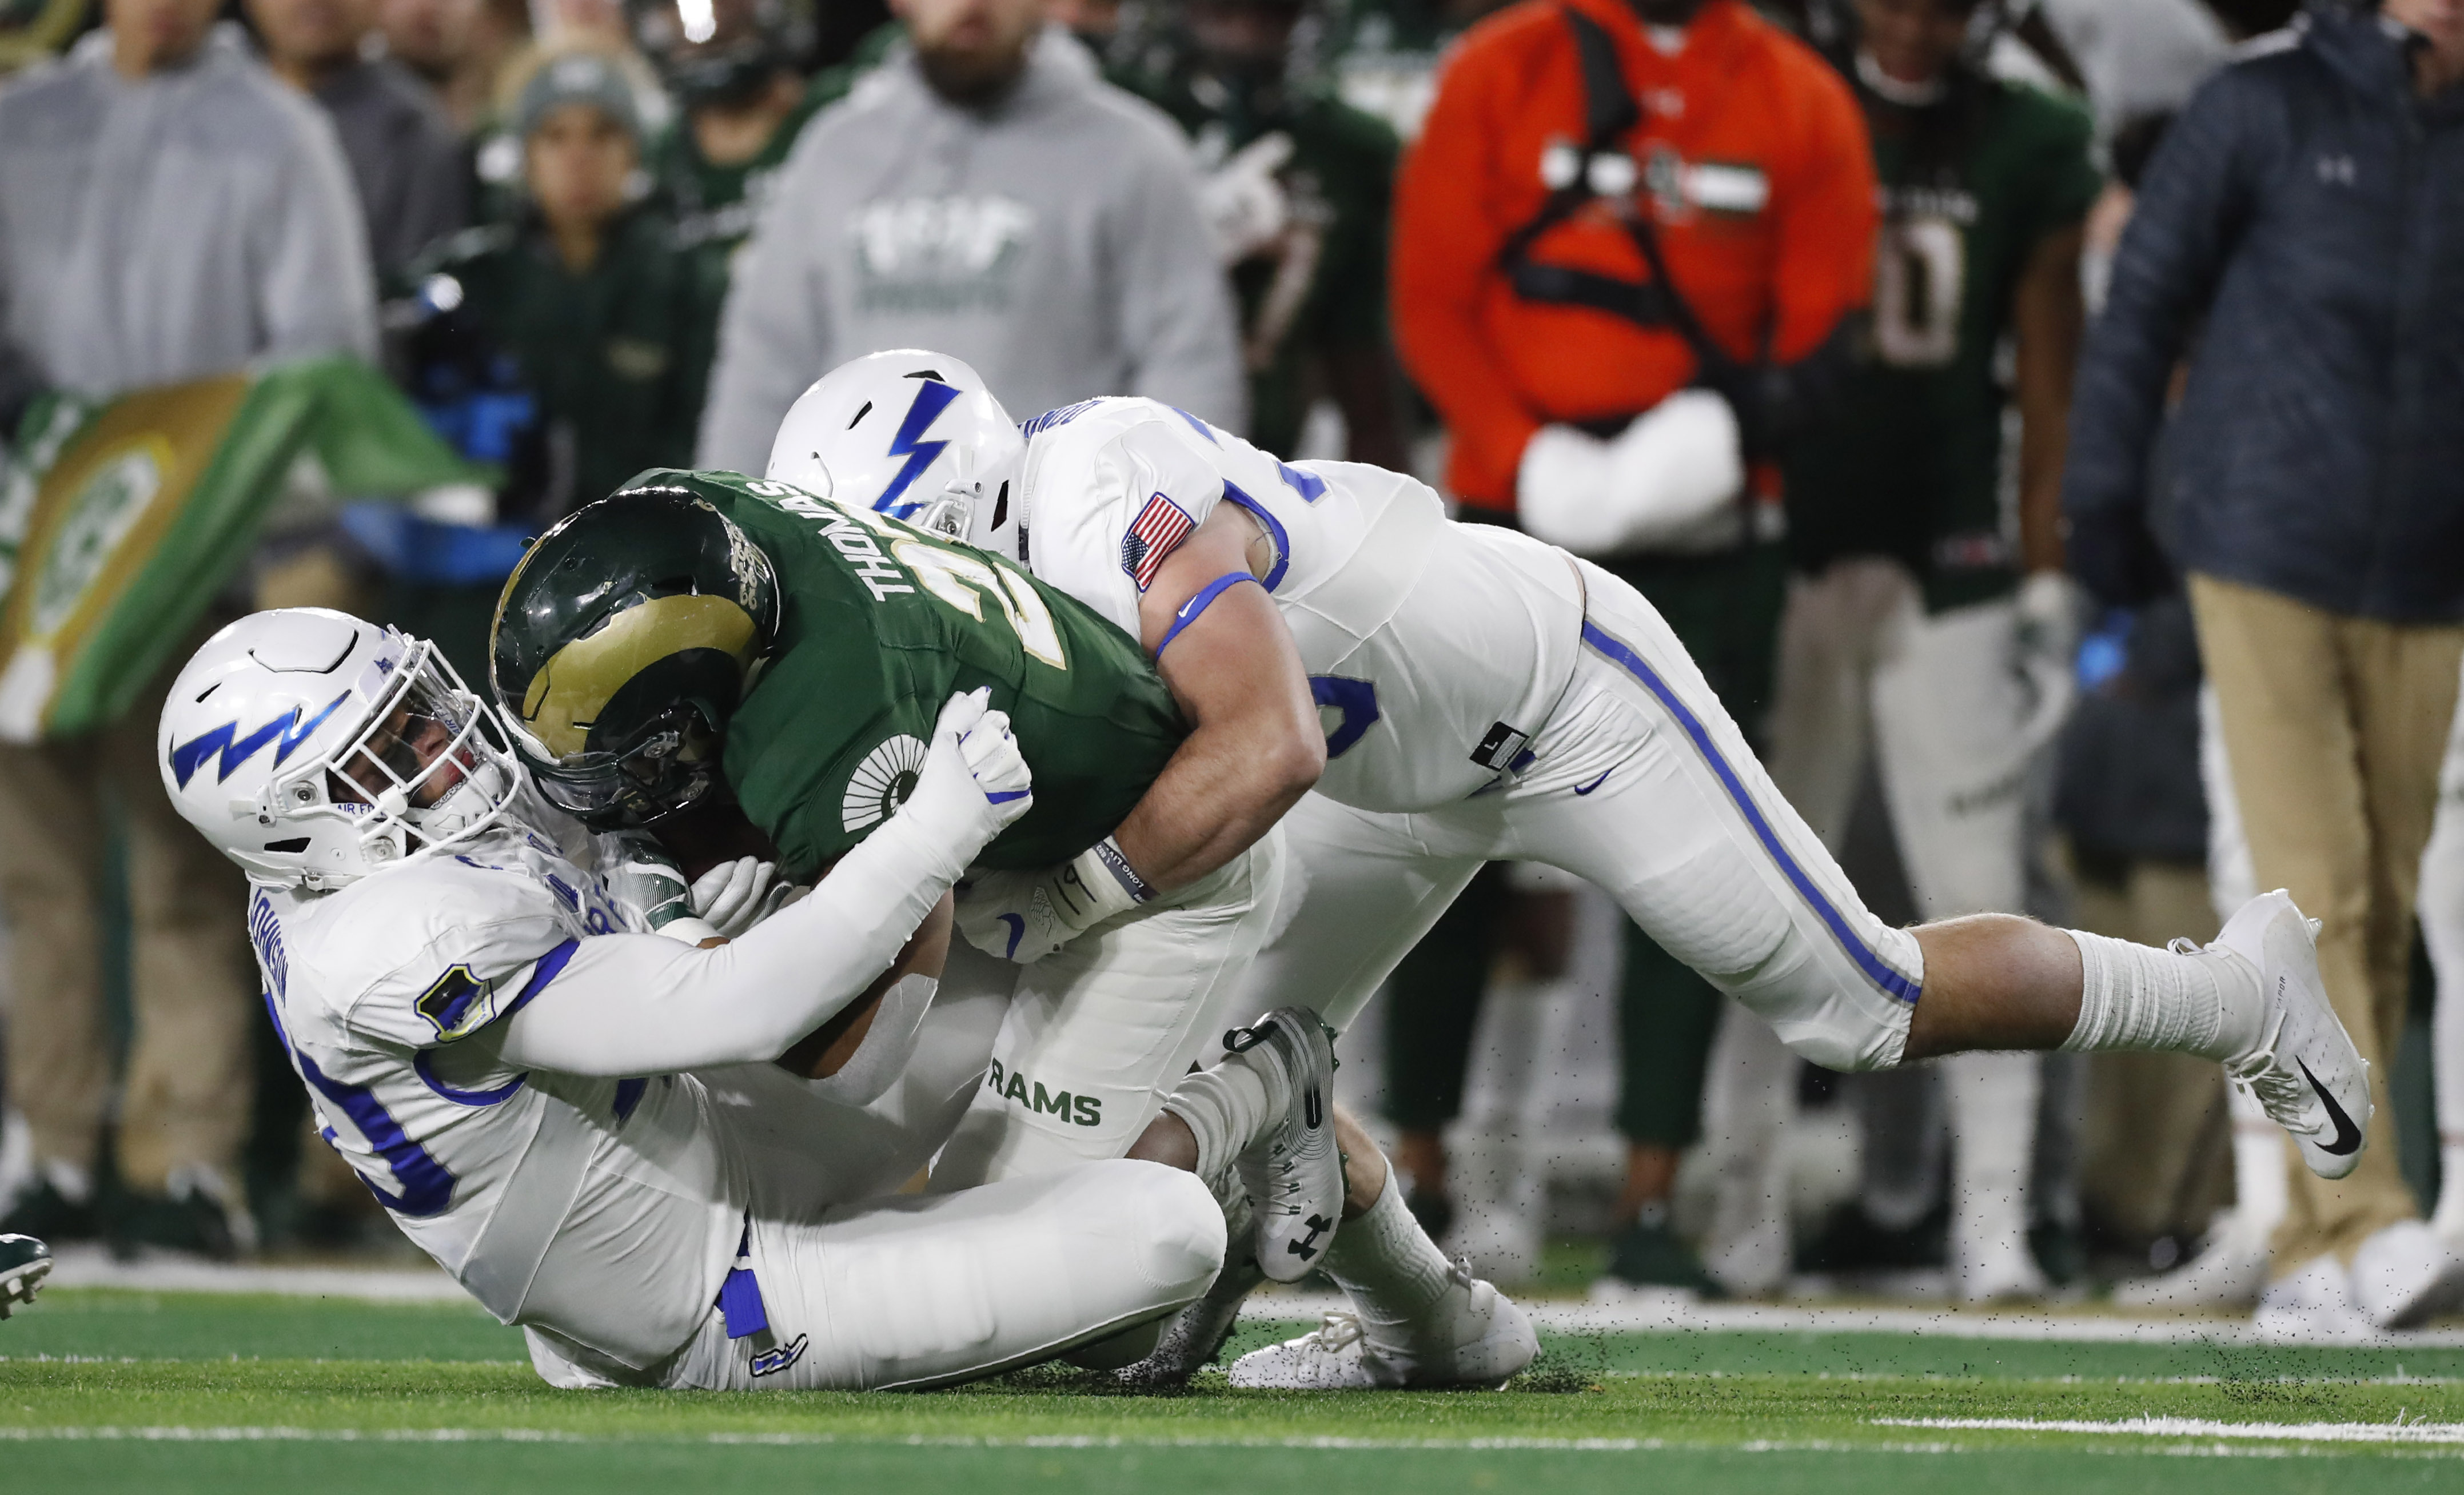 Multiple reports indicate that Air Force and Colorado State could join the American Athletic Conference.